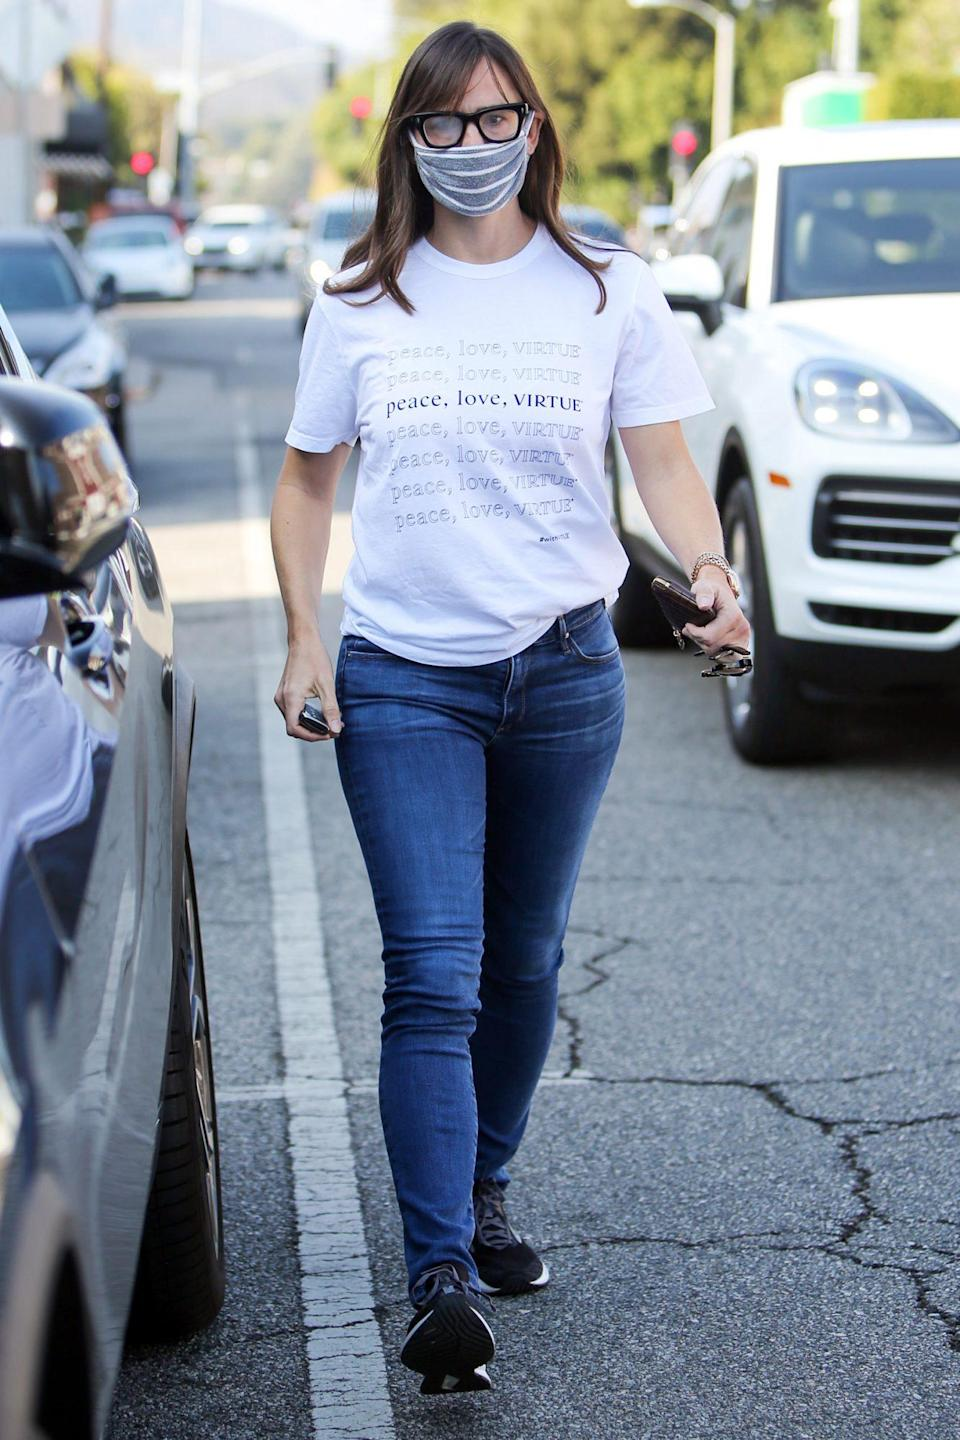 "<p>Jennifer Garner spreads good vibes in L.A. on Thursday while wearing a shirt that says, ""peace, love, VIRTUE."" </p>"